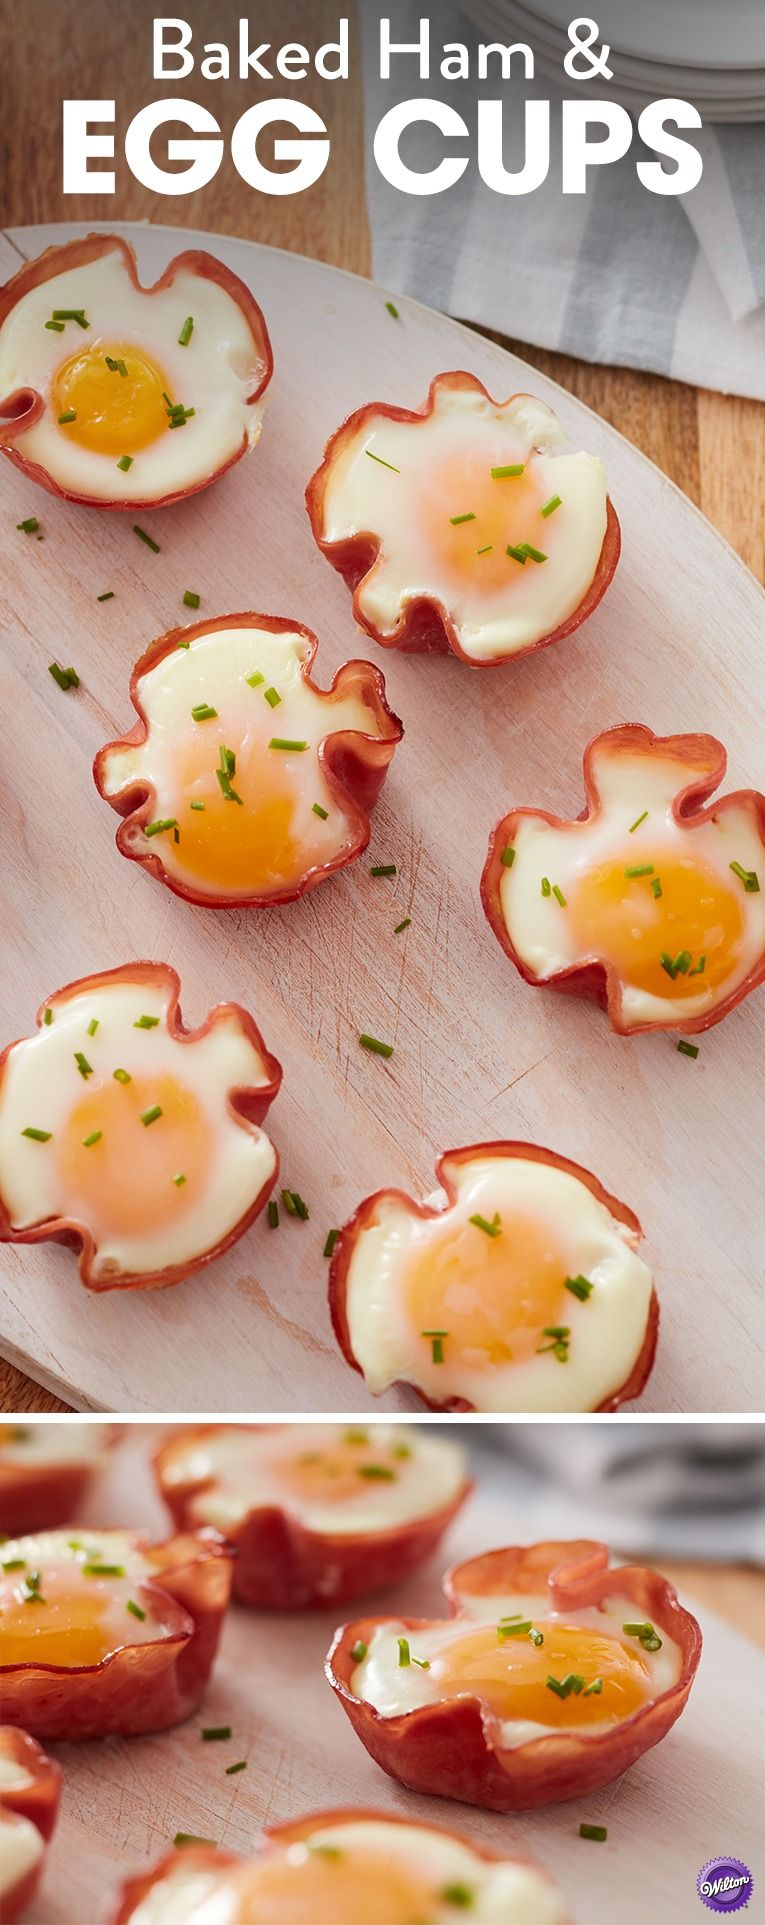 Baked Ham & Egg Cups Recipe - Use your muffin pan to create these delicious baked ham and egg cups for a protein-packed breakfast. Brush ham slices evenly with a thin layer of mustard. Place 1 slice in each of the prepared pan cavities to form a cup, mustard side facing up. Crack an egg into each of the cups and sprinkle evenly with salt and pepper. Bake 14-16 minutes. Makes 2 dozen baked ham and egg cups.